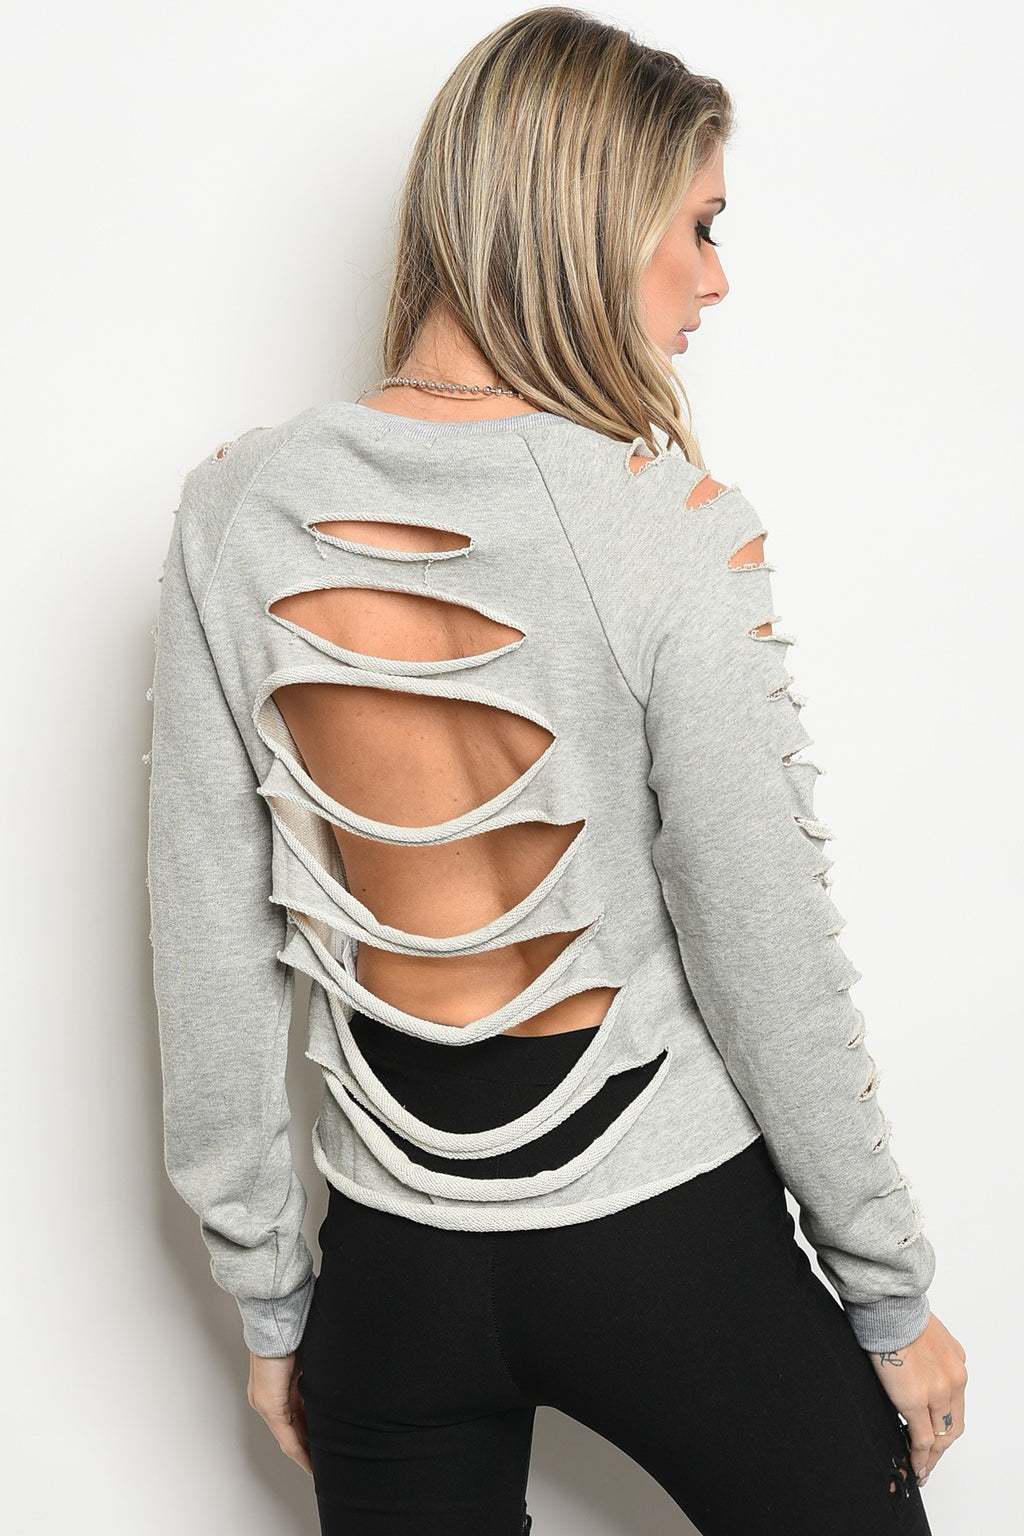 Gray Sweat Shirt With Rips In Back And Down Sleeves Long Sleeve.